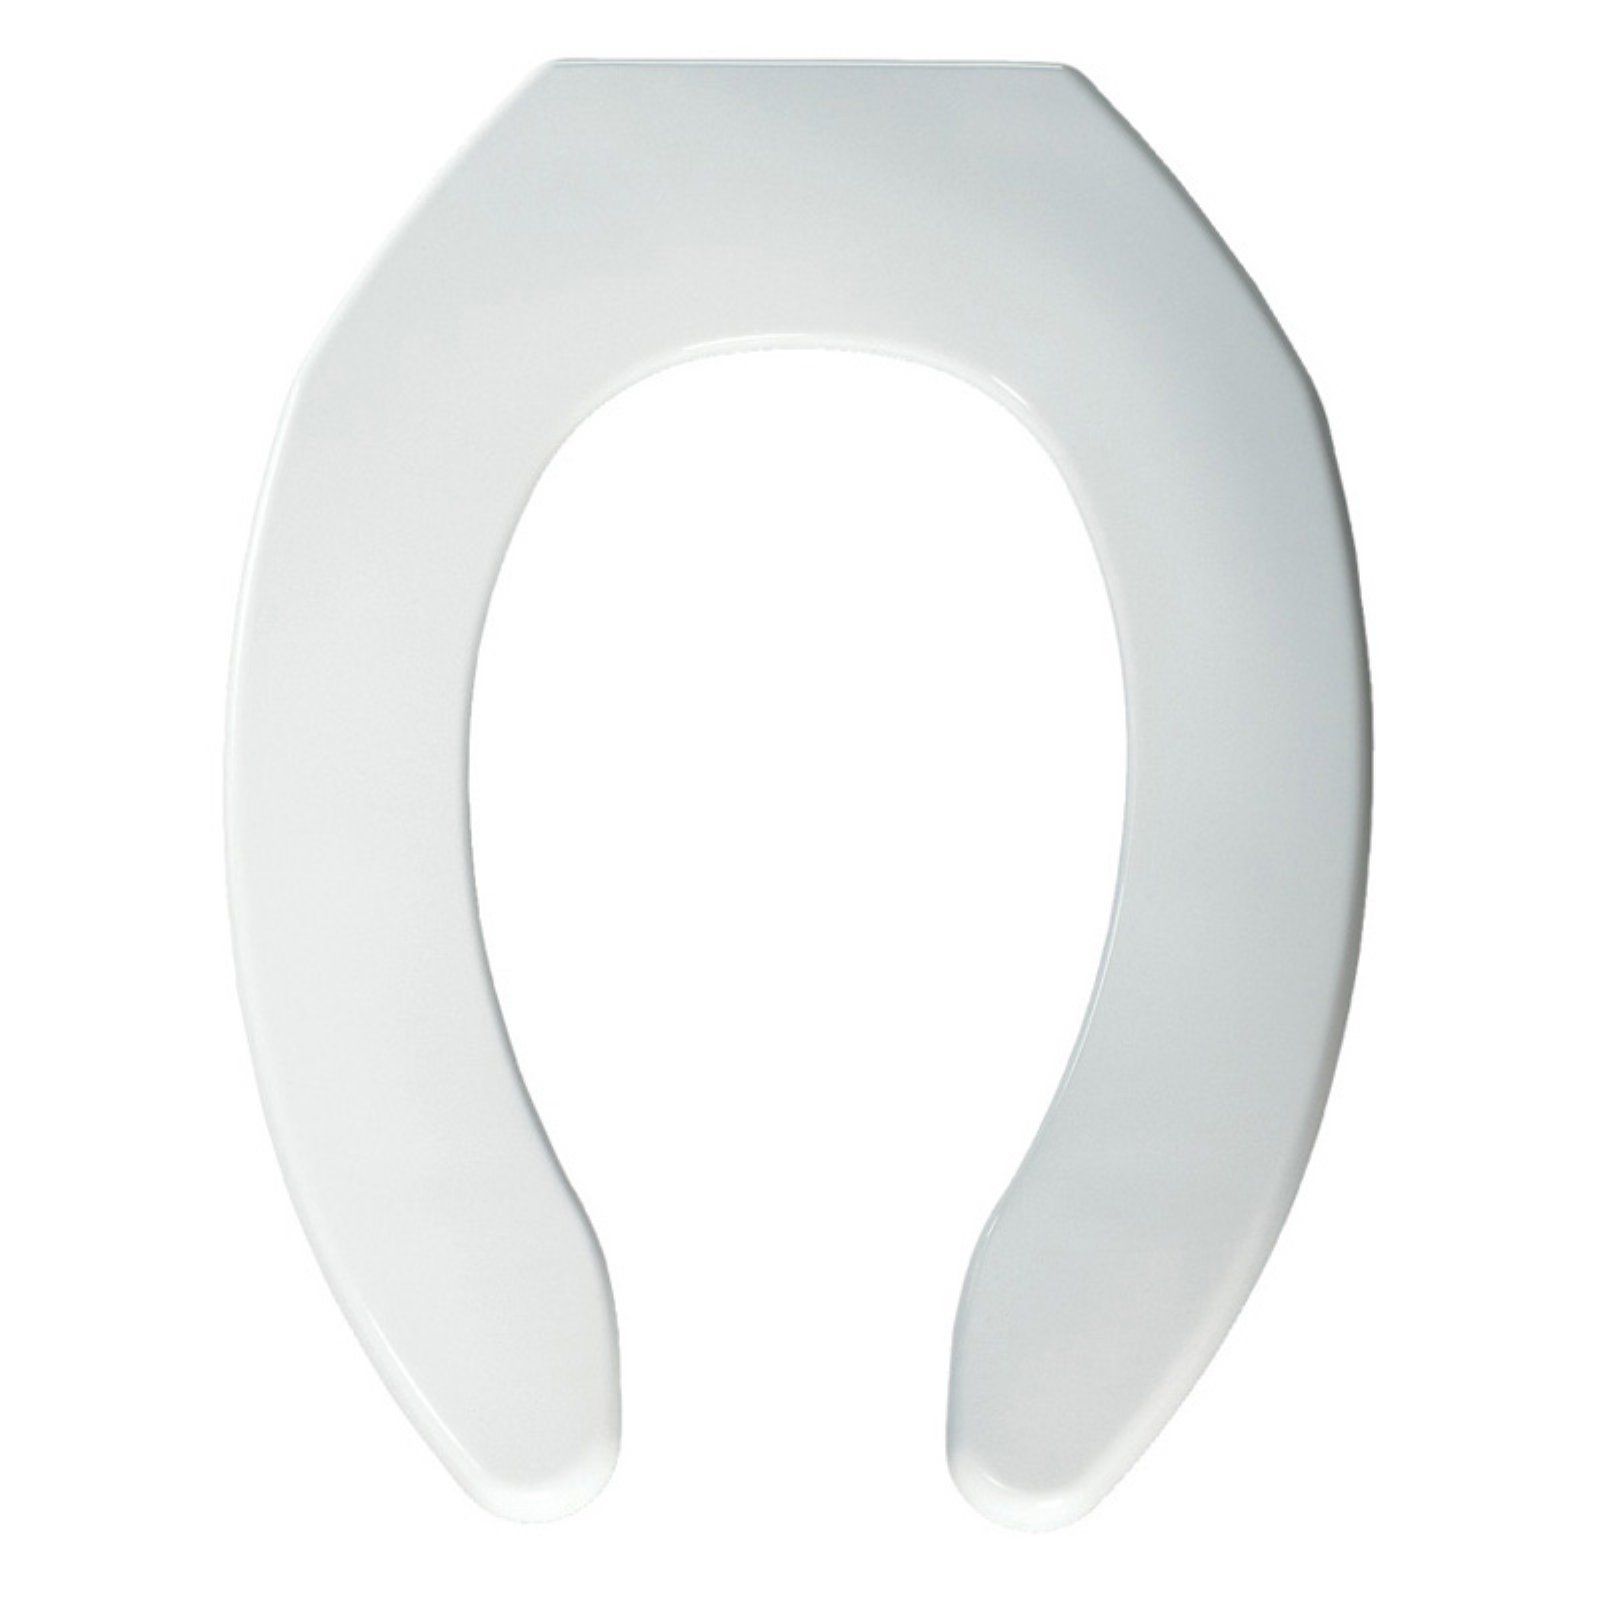 Bemis B1055ssc000 Elongated Open Front Less Cover Toilet Seat With